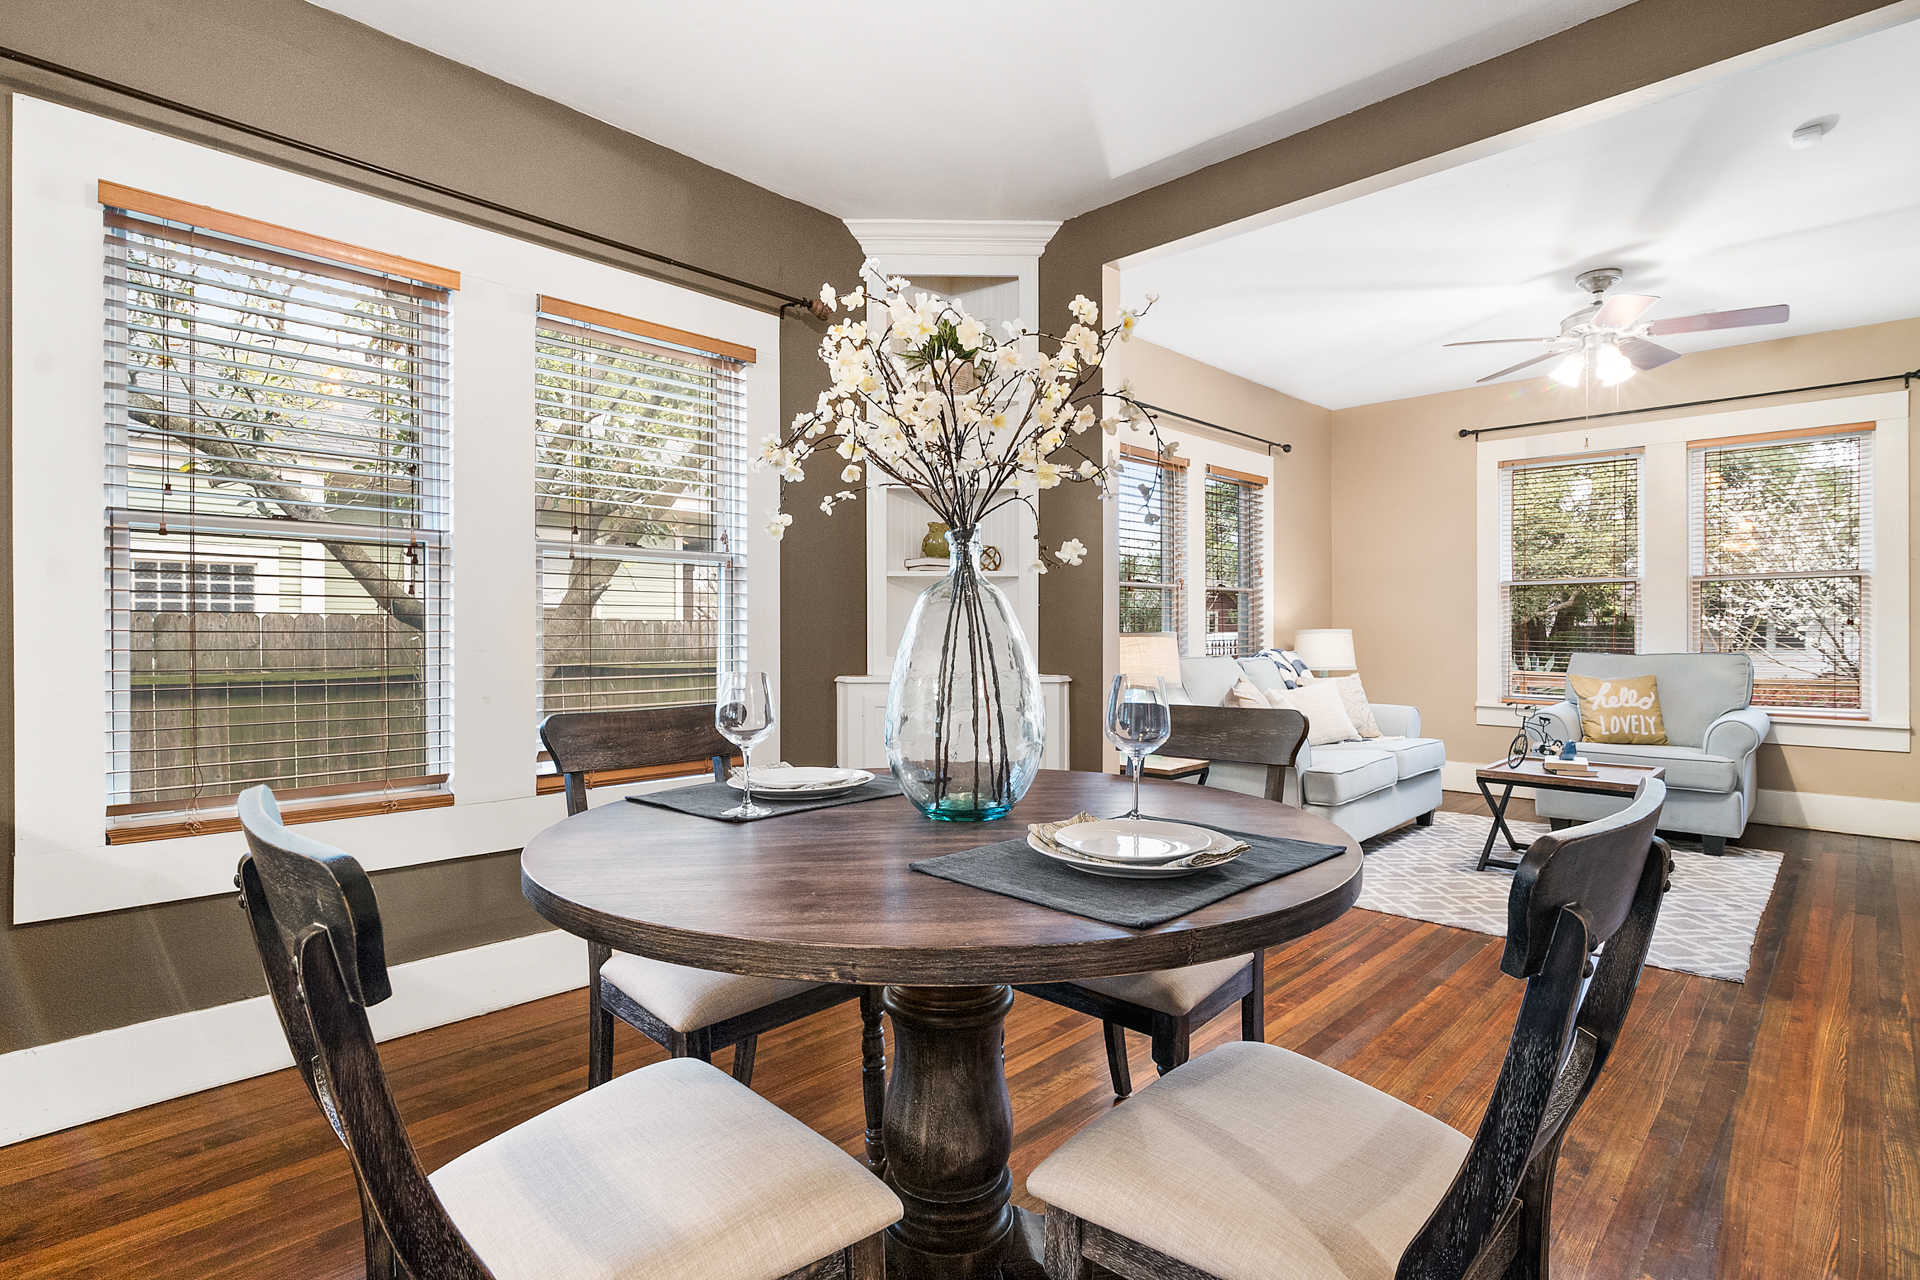 Staging The Nest - Vacant Home Staging - Dining Room 2